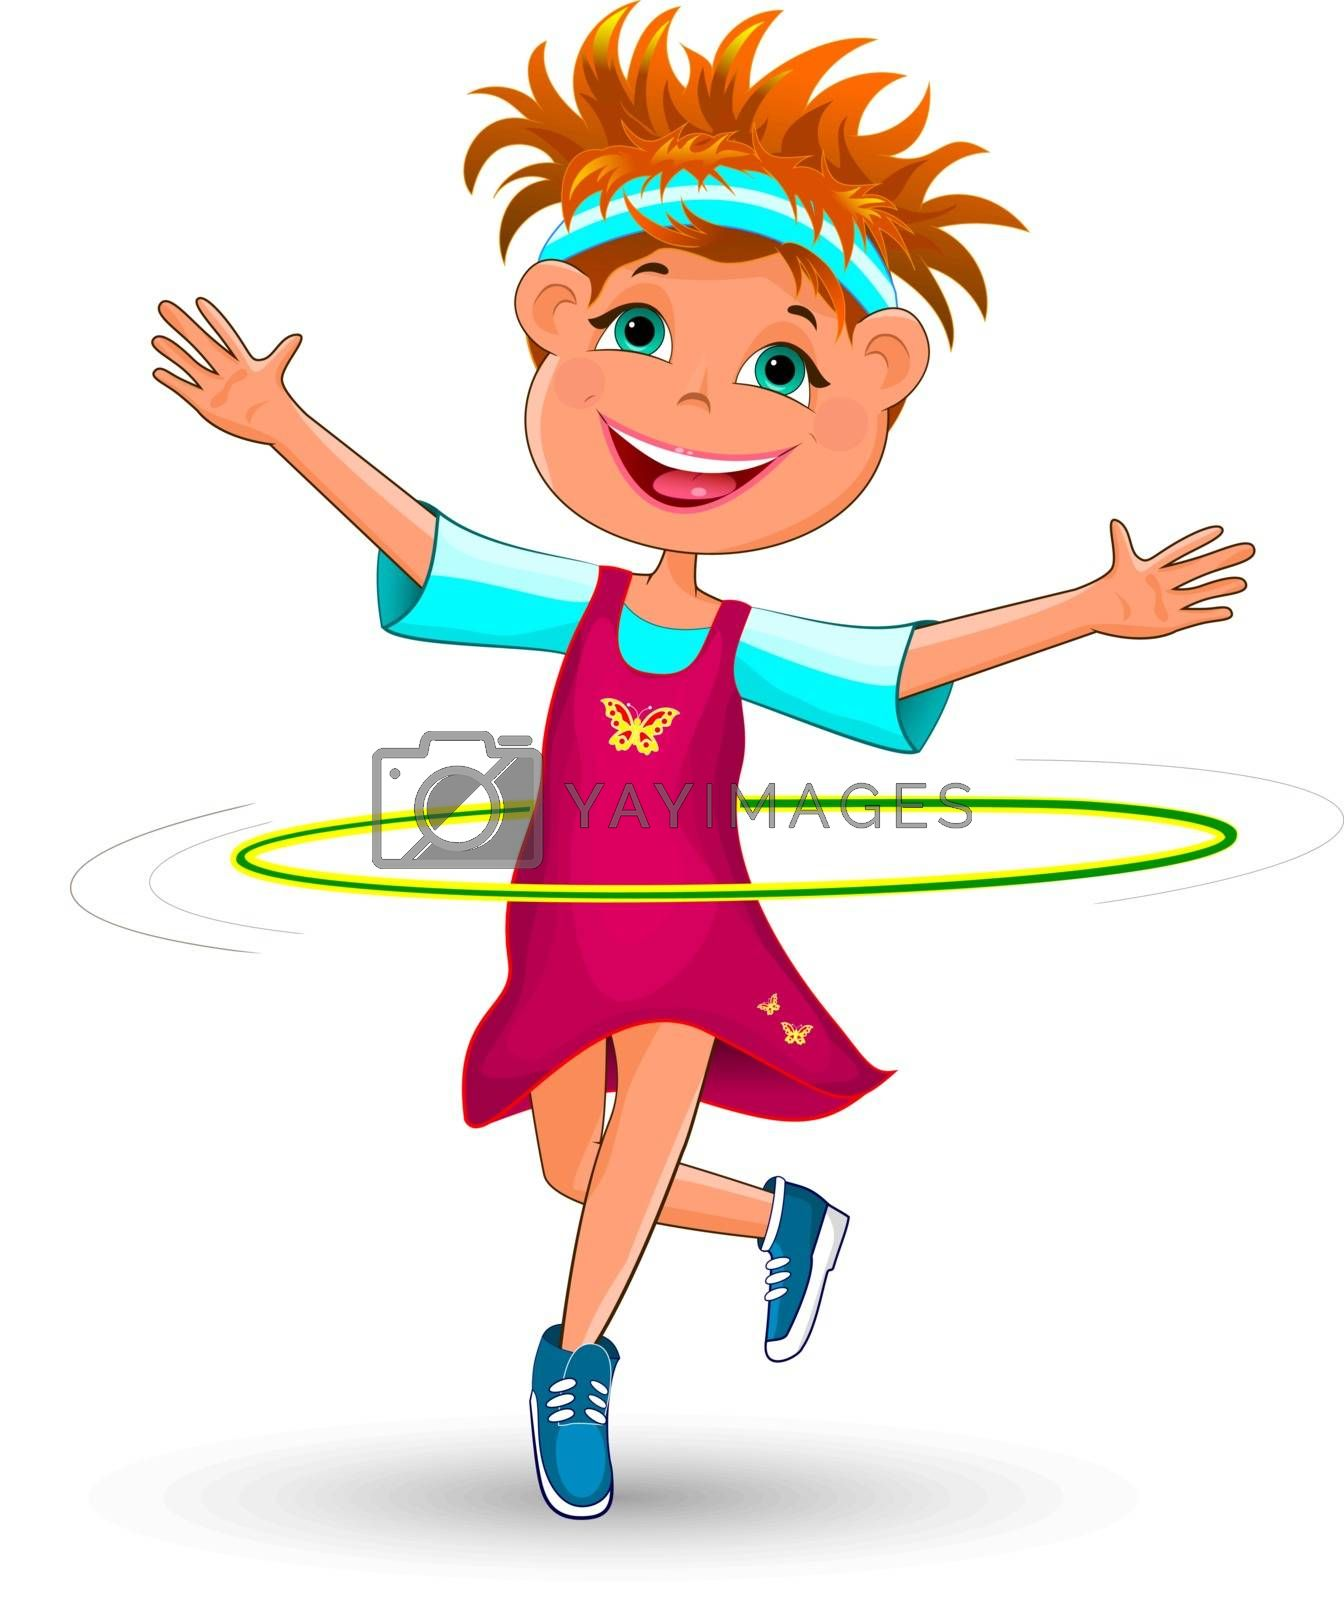 Joyful child with a gymnastic hoop. Smiling girl is doing exercises with a hoop.